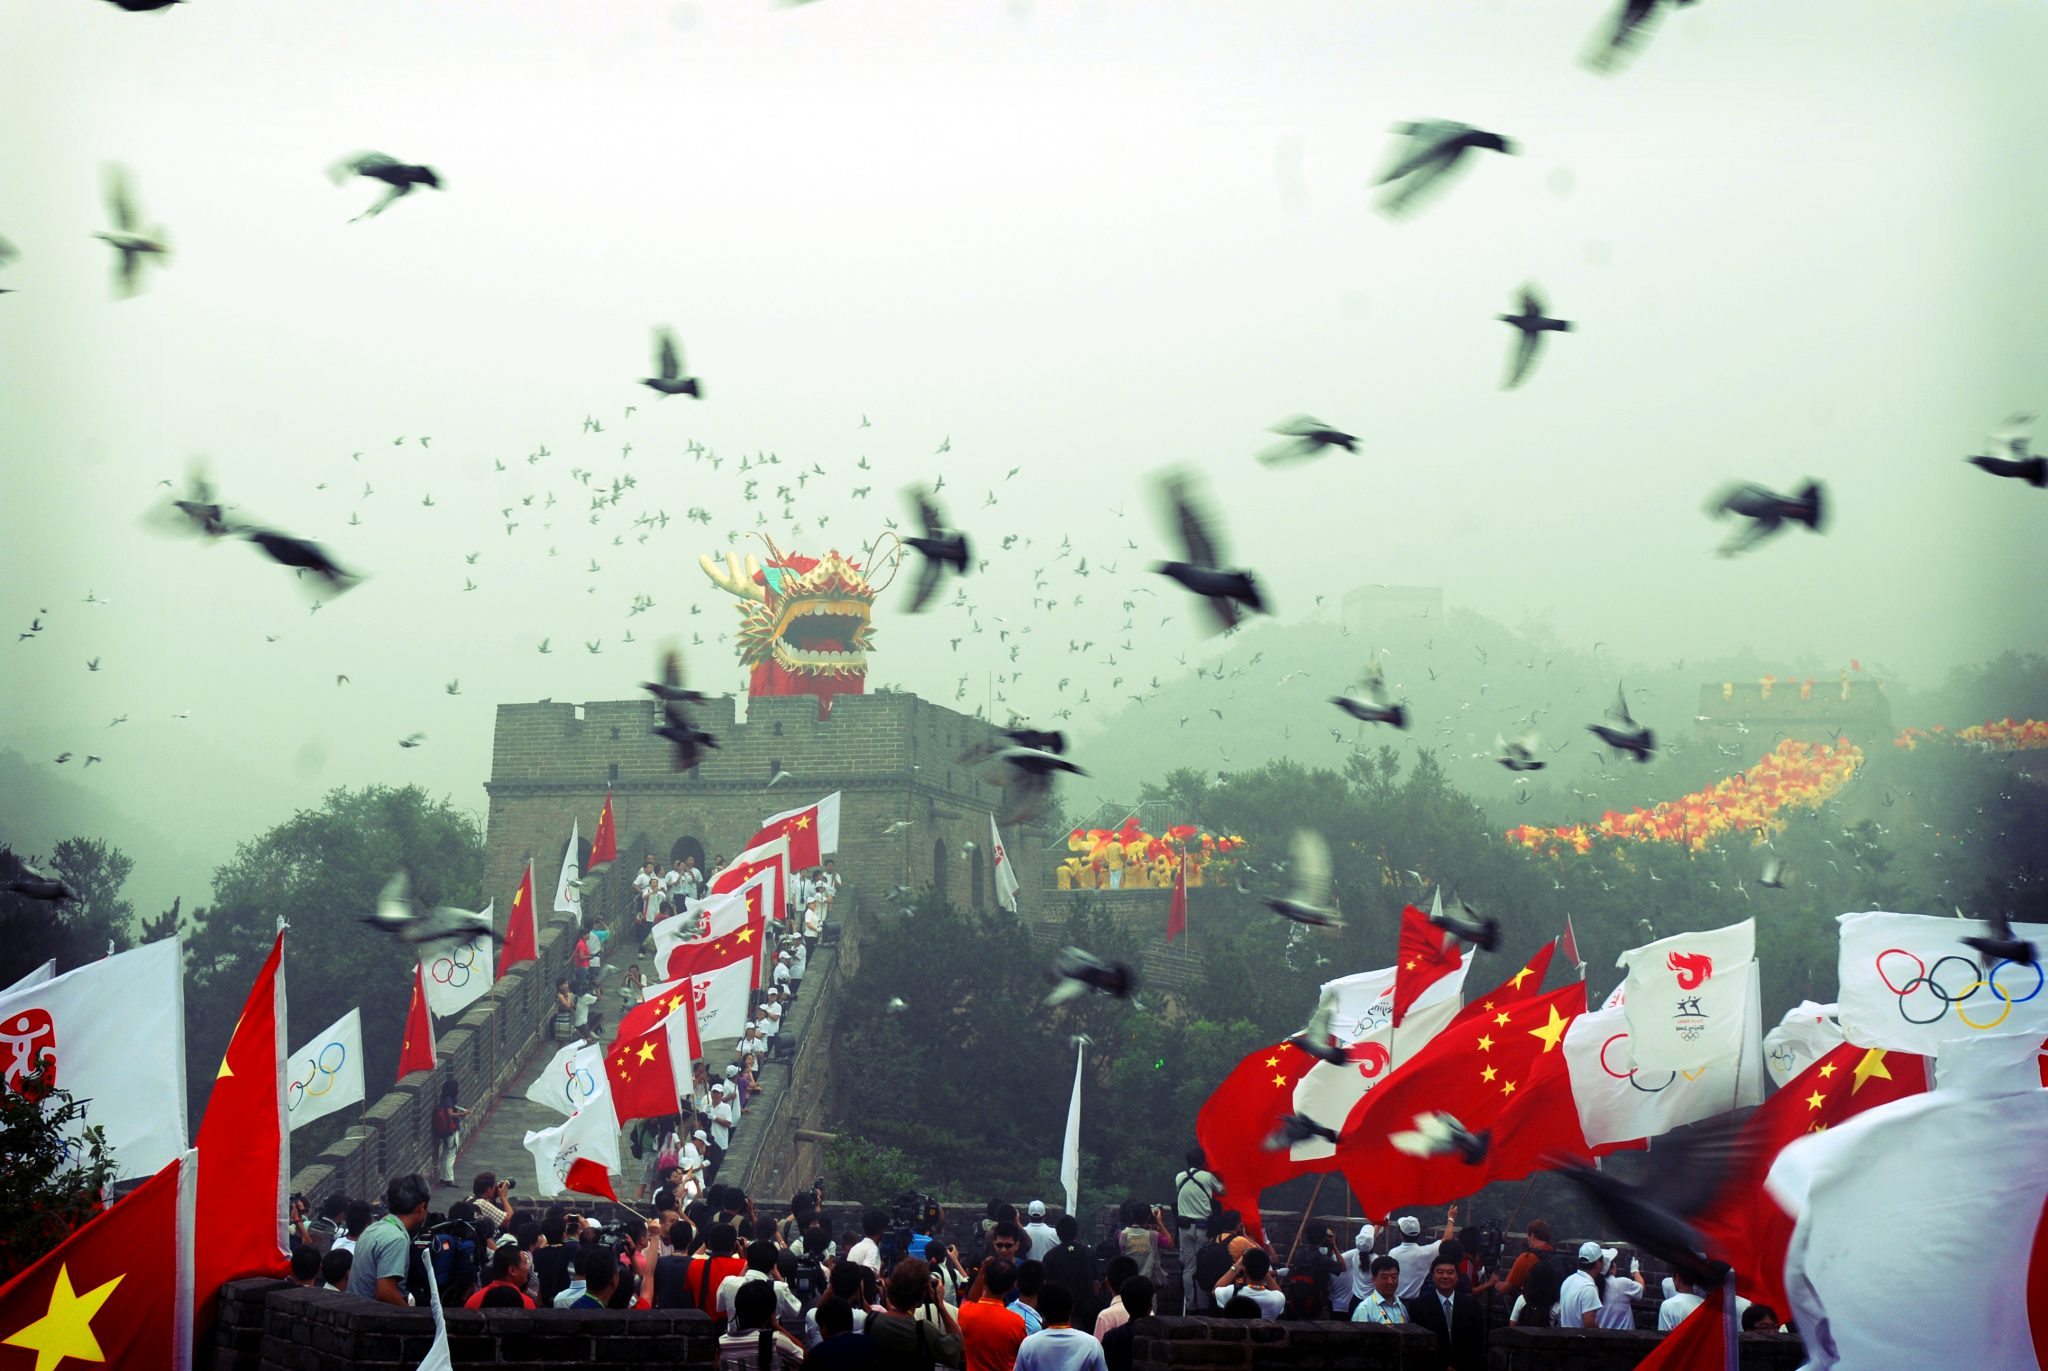 """""""Olympic torch relay, Great Wall of China"""" @ Edwin Lee, 2008, CC BY-ND 2.0"""